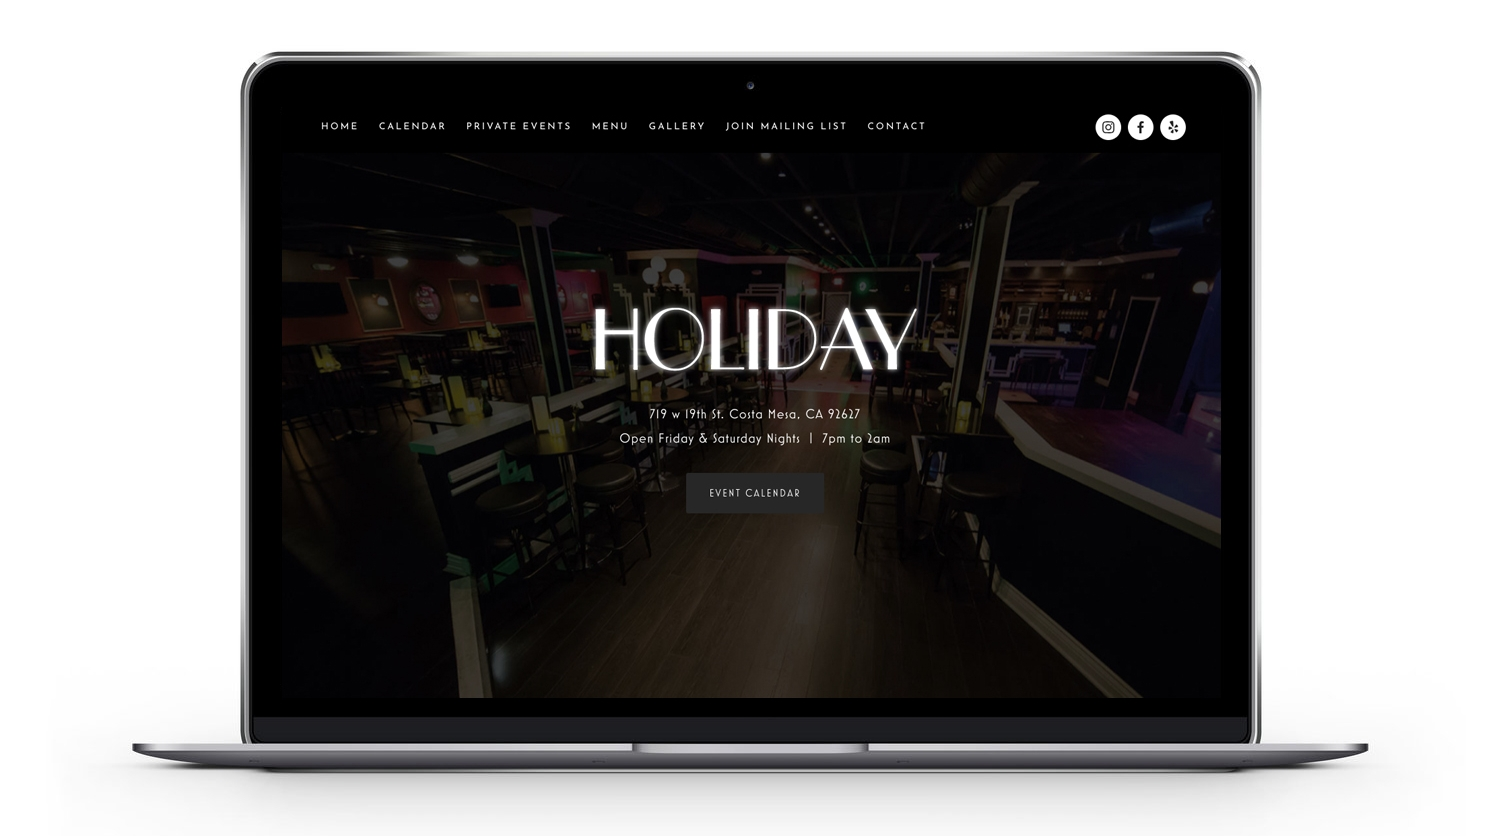 Holiday-Website-Computer.jpg